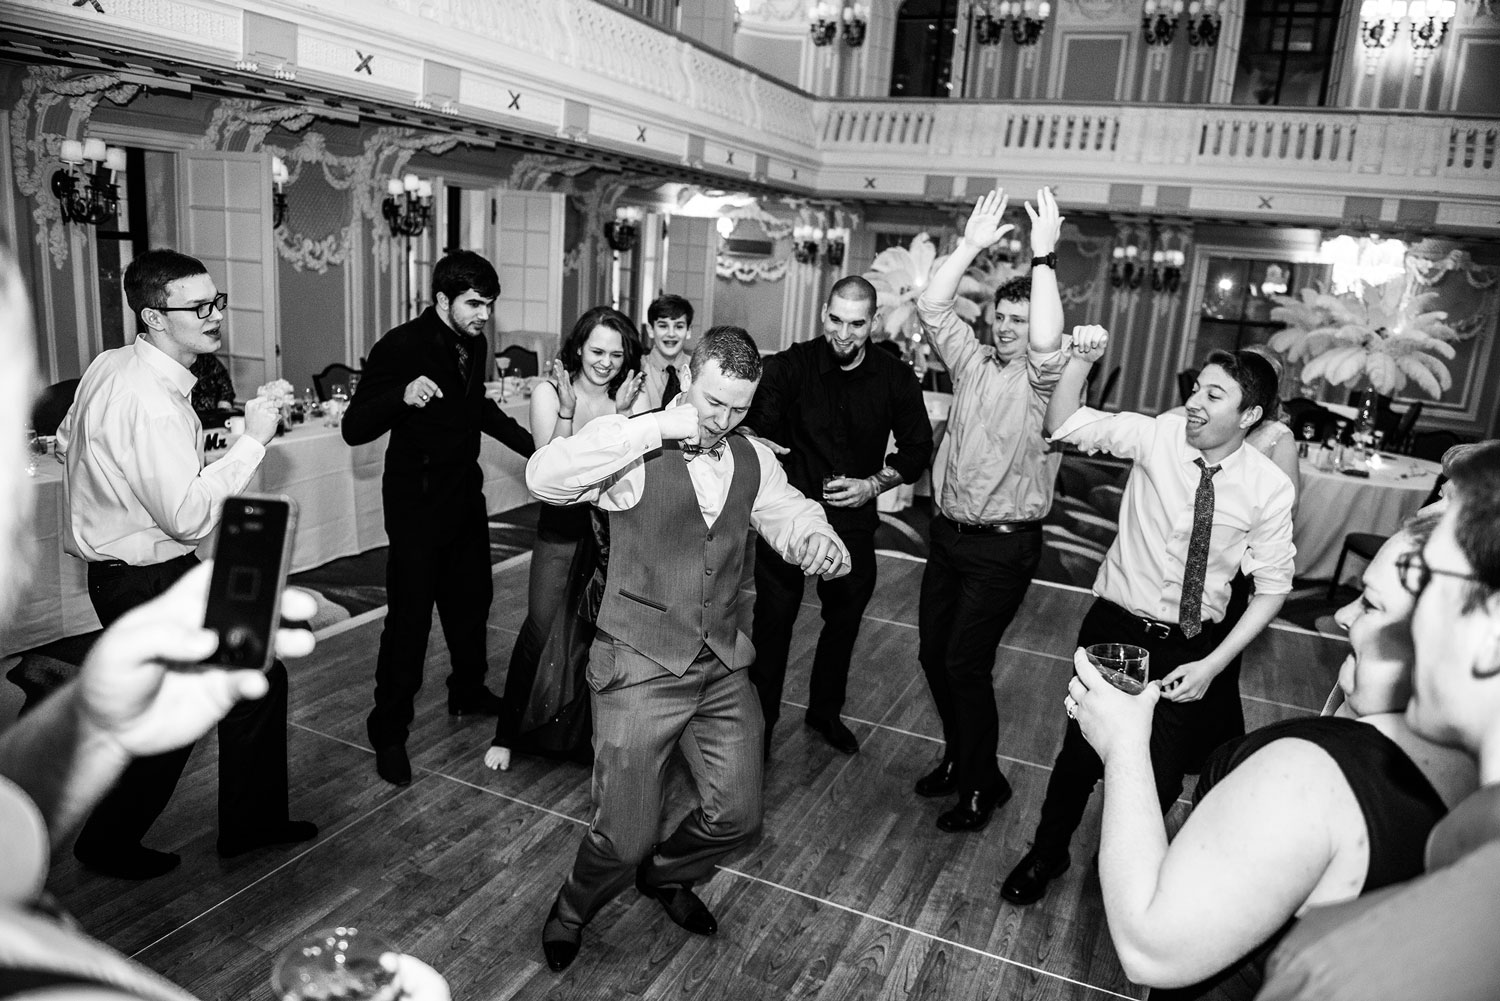 Groom dancing at his wedding ceremony in Chicago's Blackstone Hotel